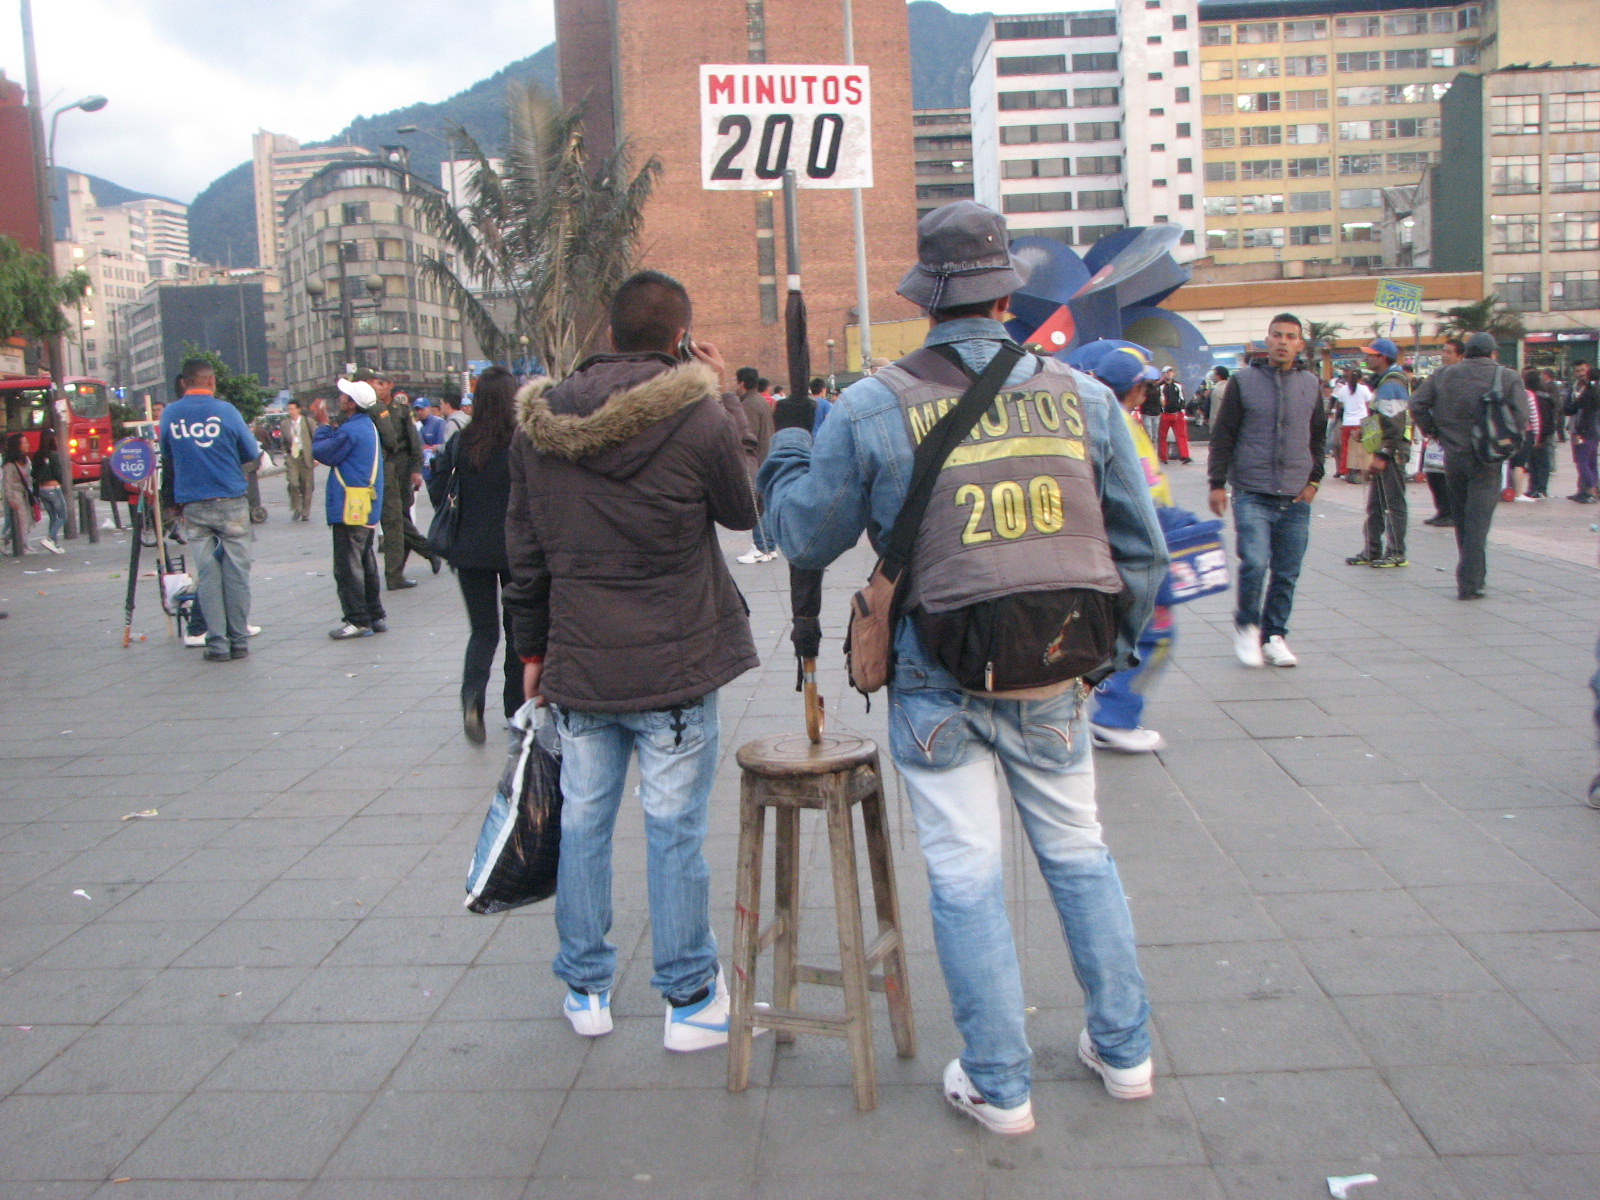 Bogotá's Minute Men (and Women